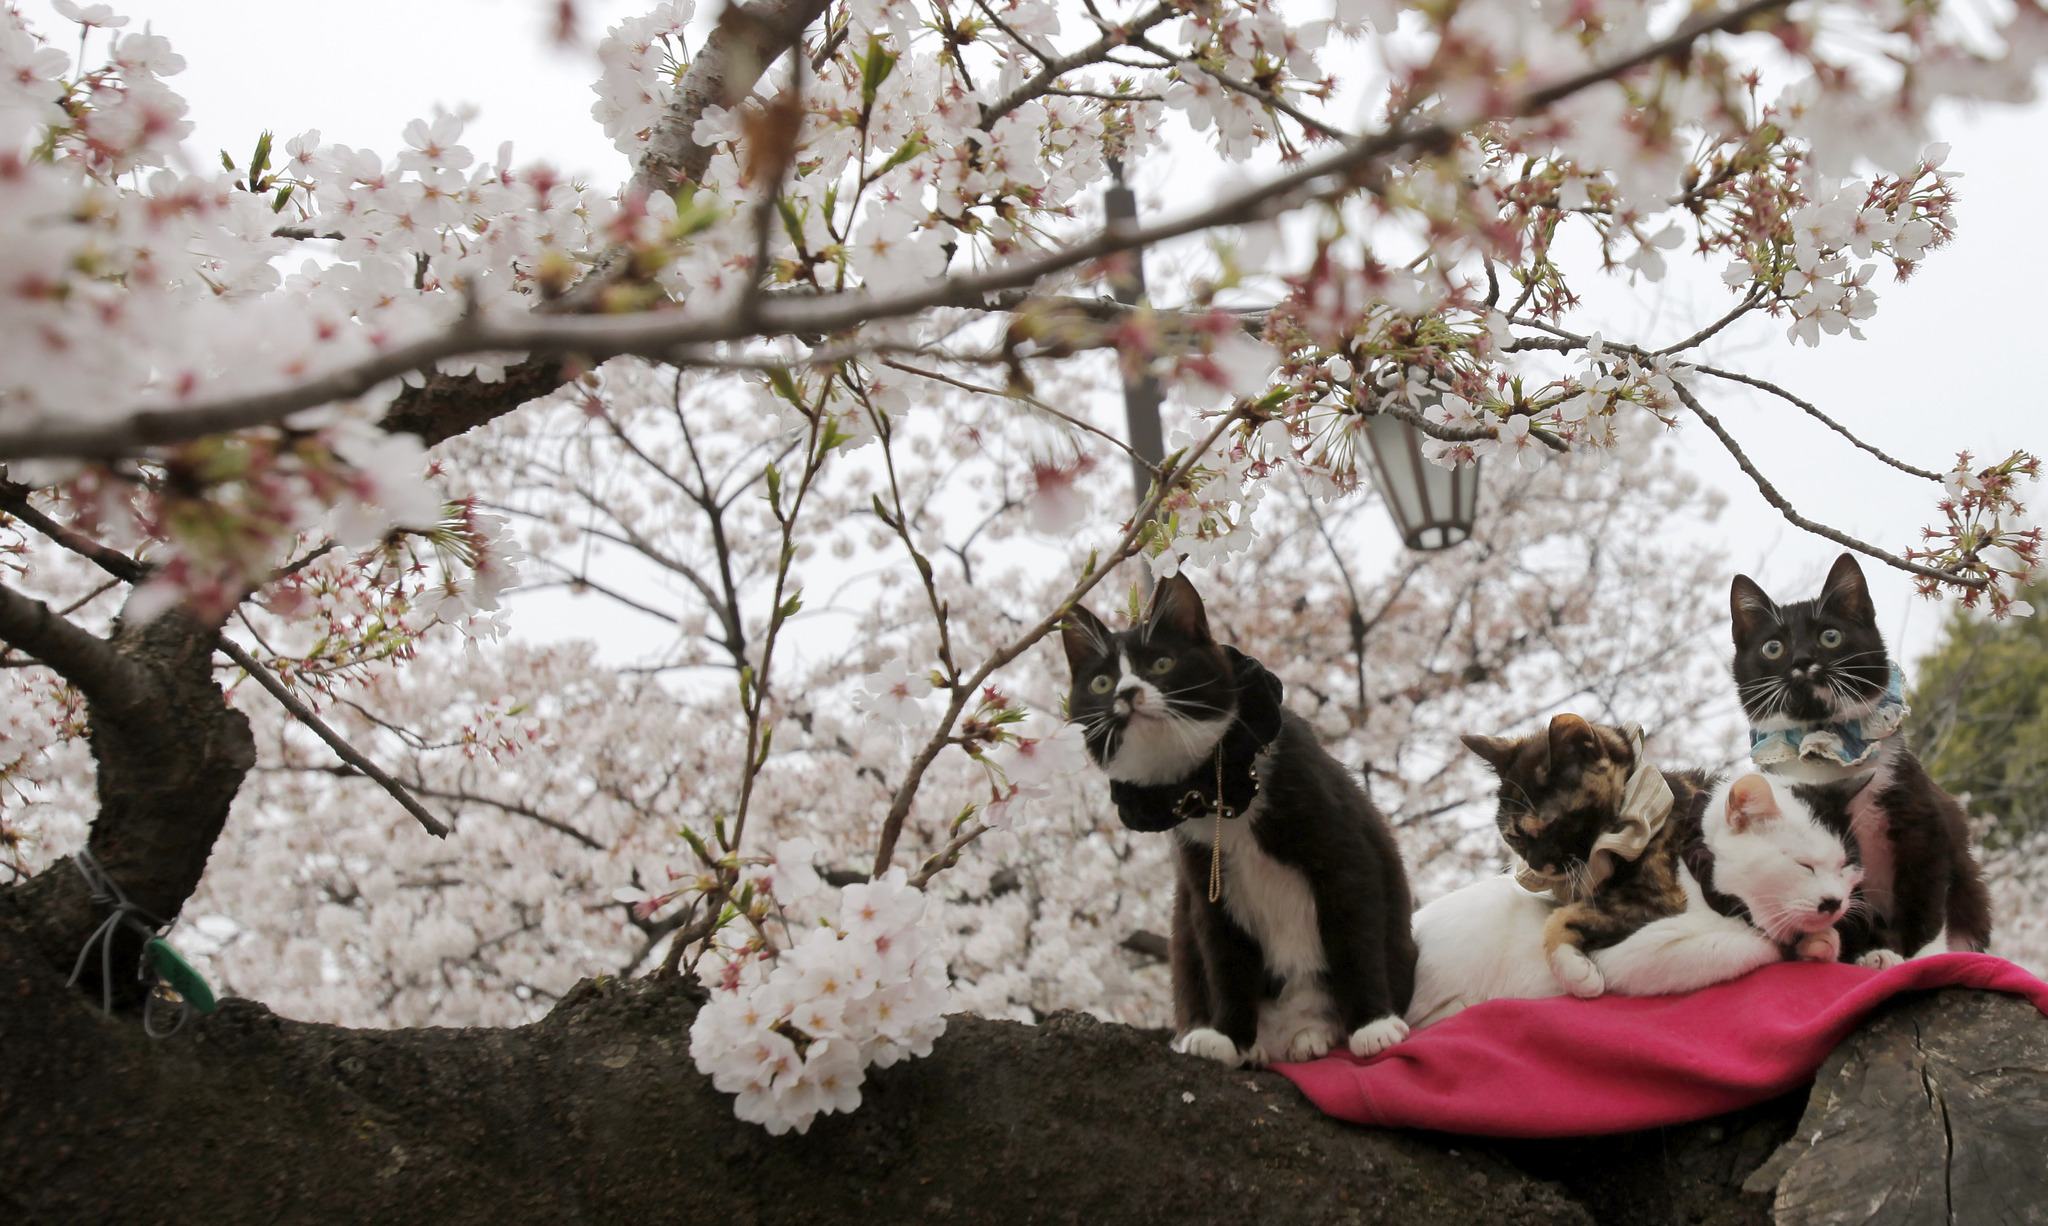 Cats sit on a branch of a cherry tree as cherry blossoms are in full bloom at a park in Tokyo Friday, March 29, 2013. (Photo by Shuji Kajiyama/AP Photo)